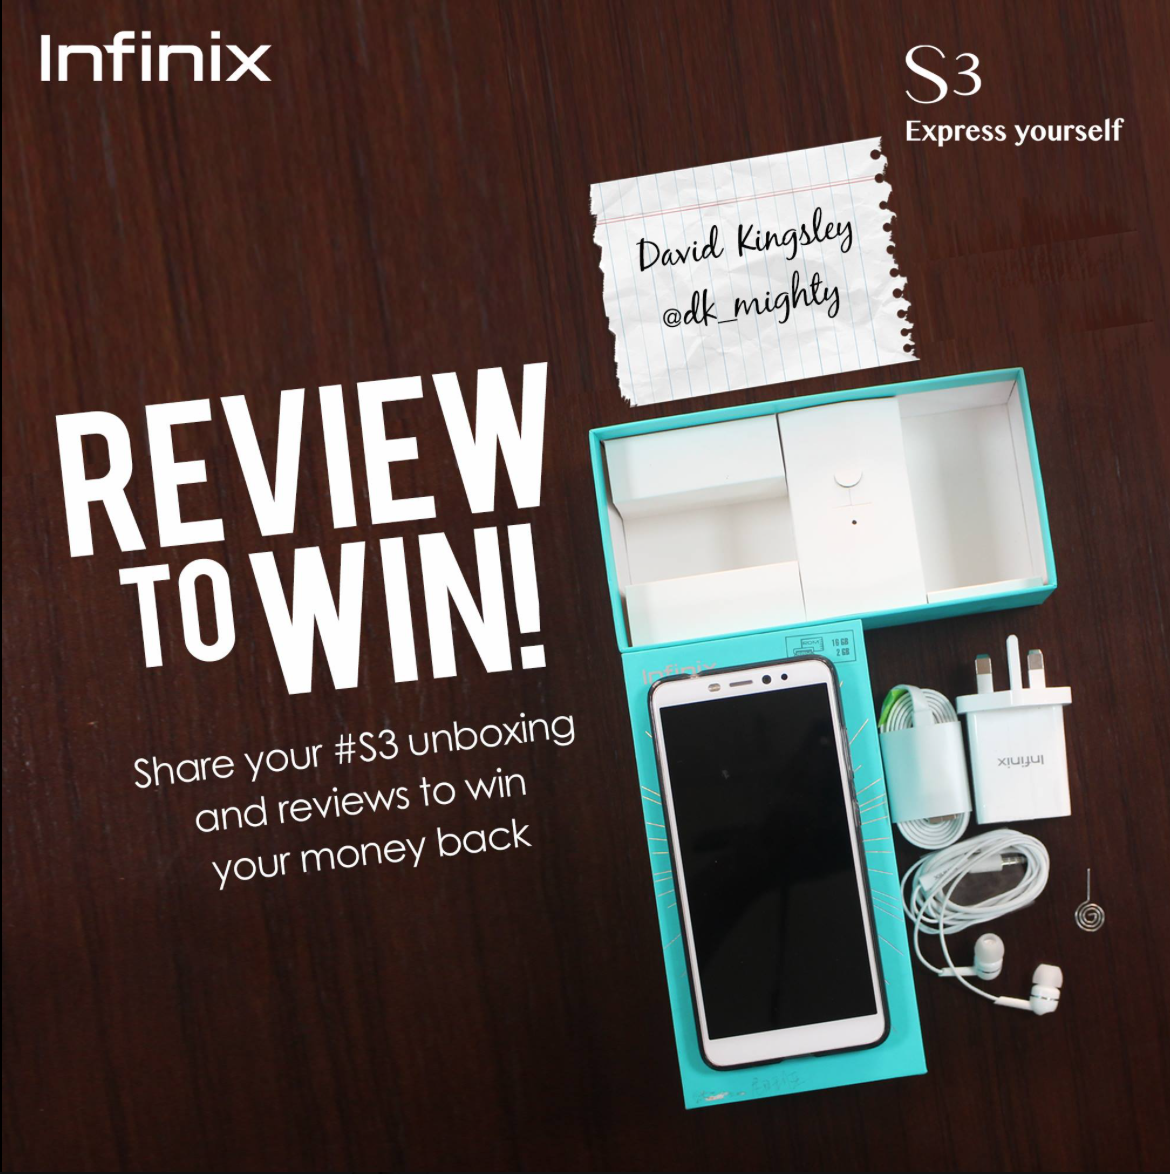 Express yourself with Infinix S3 ? Unbox, Review and WIN your money back